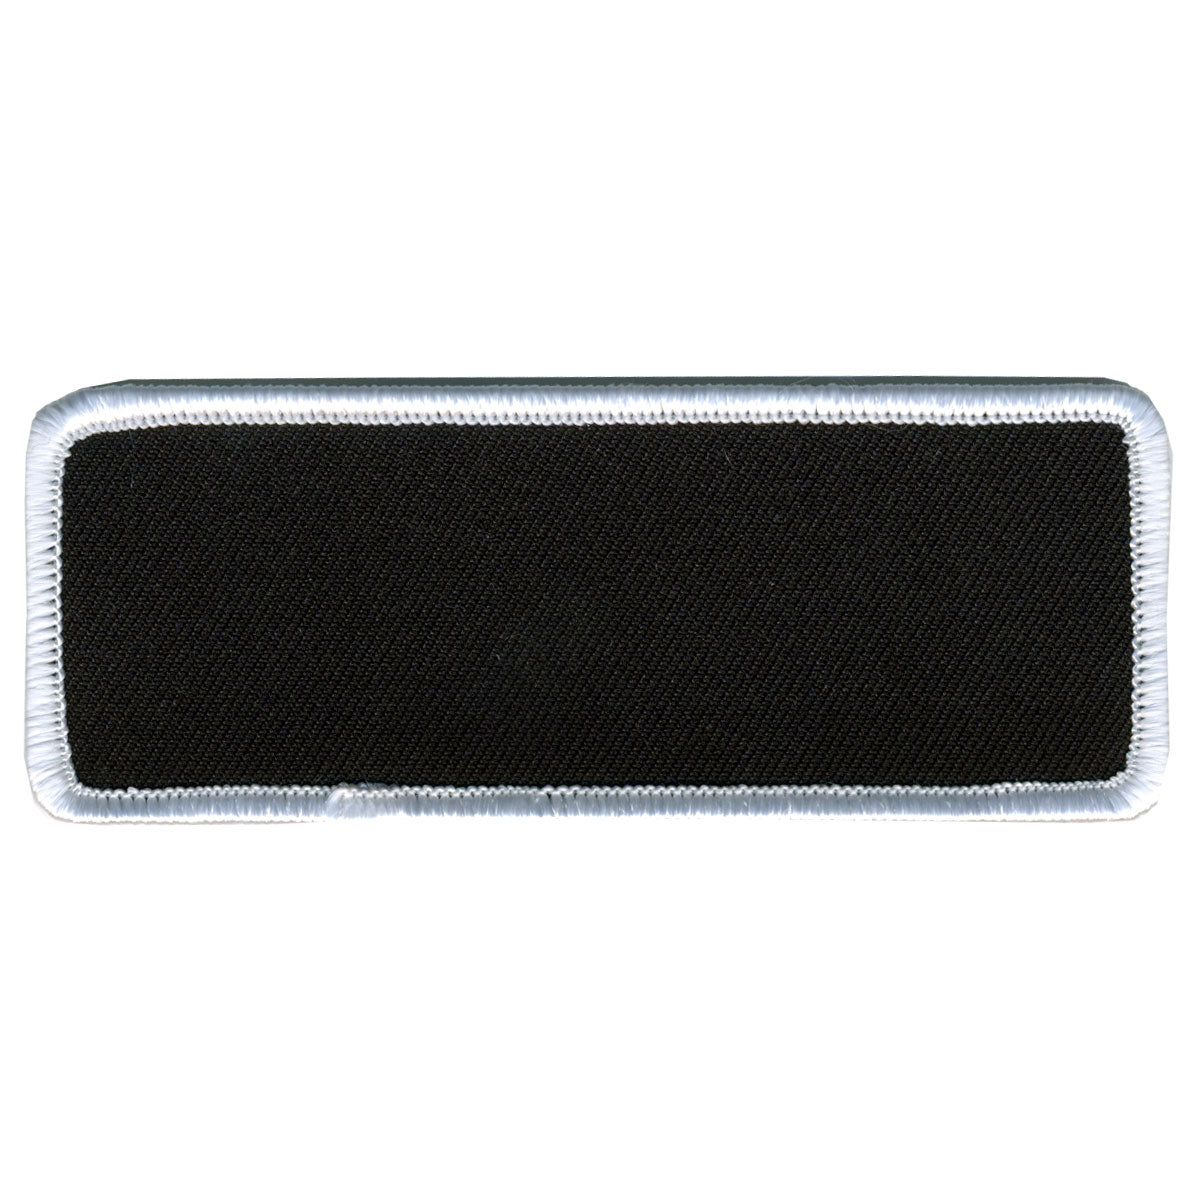 "Hot Leathers Blank w/ White Trim 4"" x 1.5"" Patch"